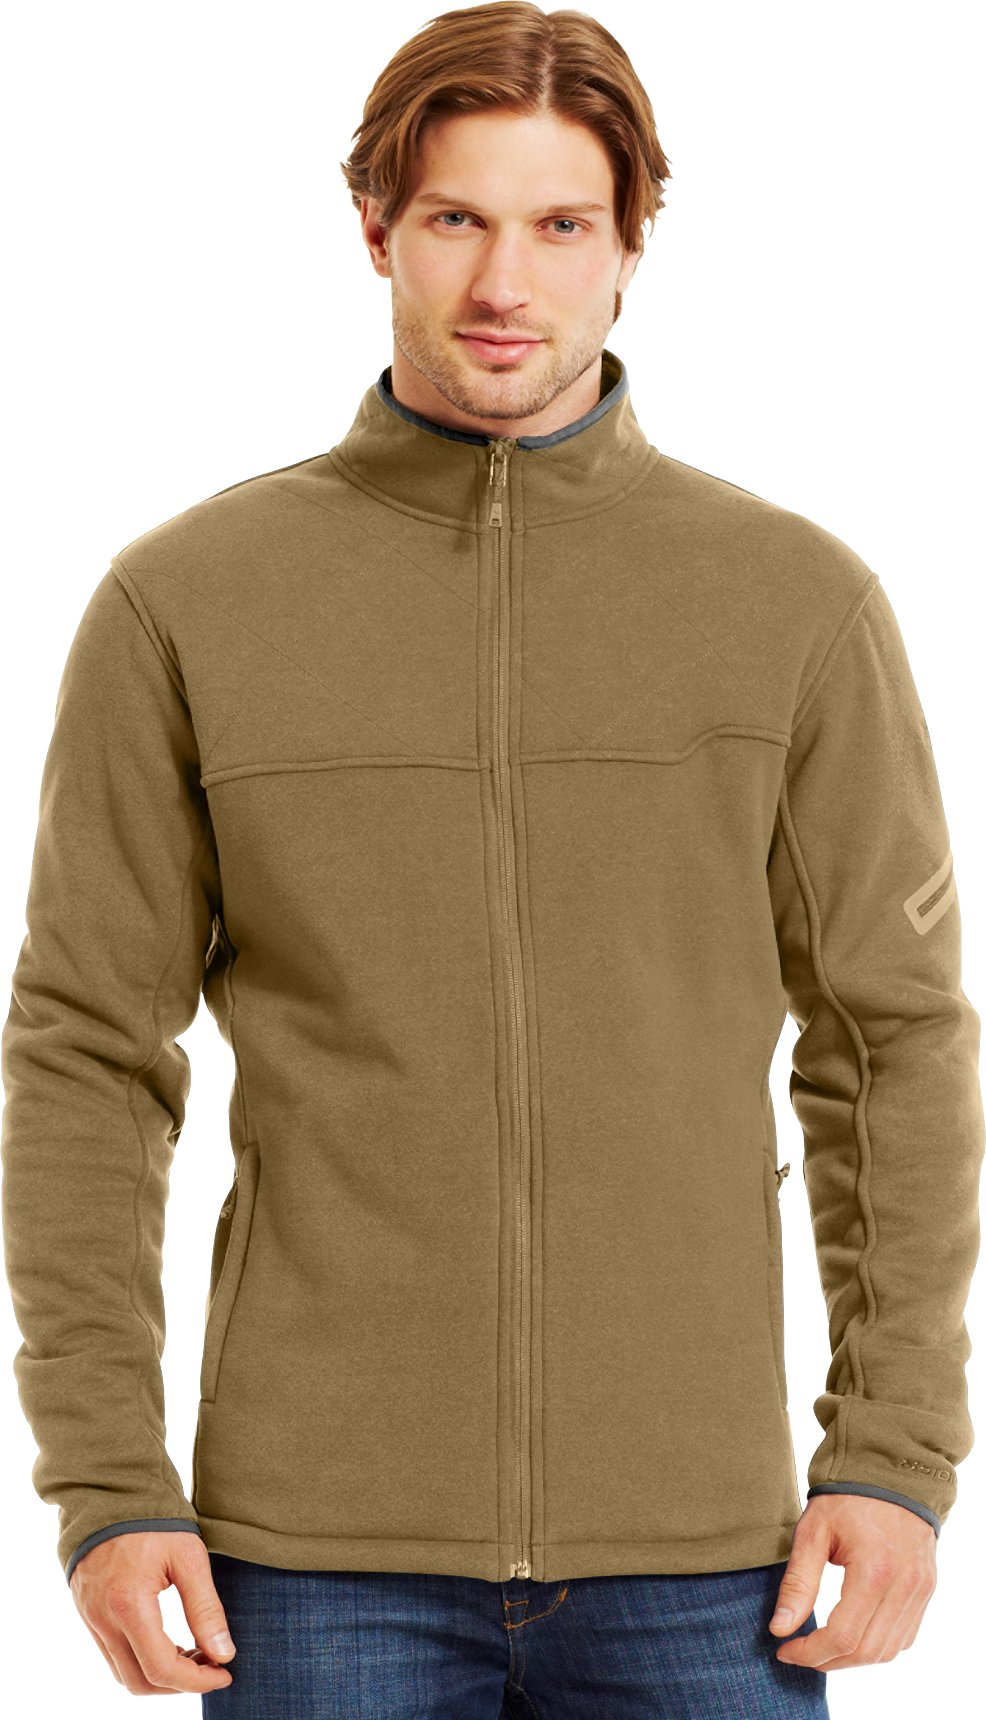 Men's Extreme ColdGear® Jacket, DEER HIDE